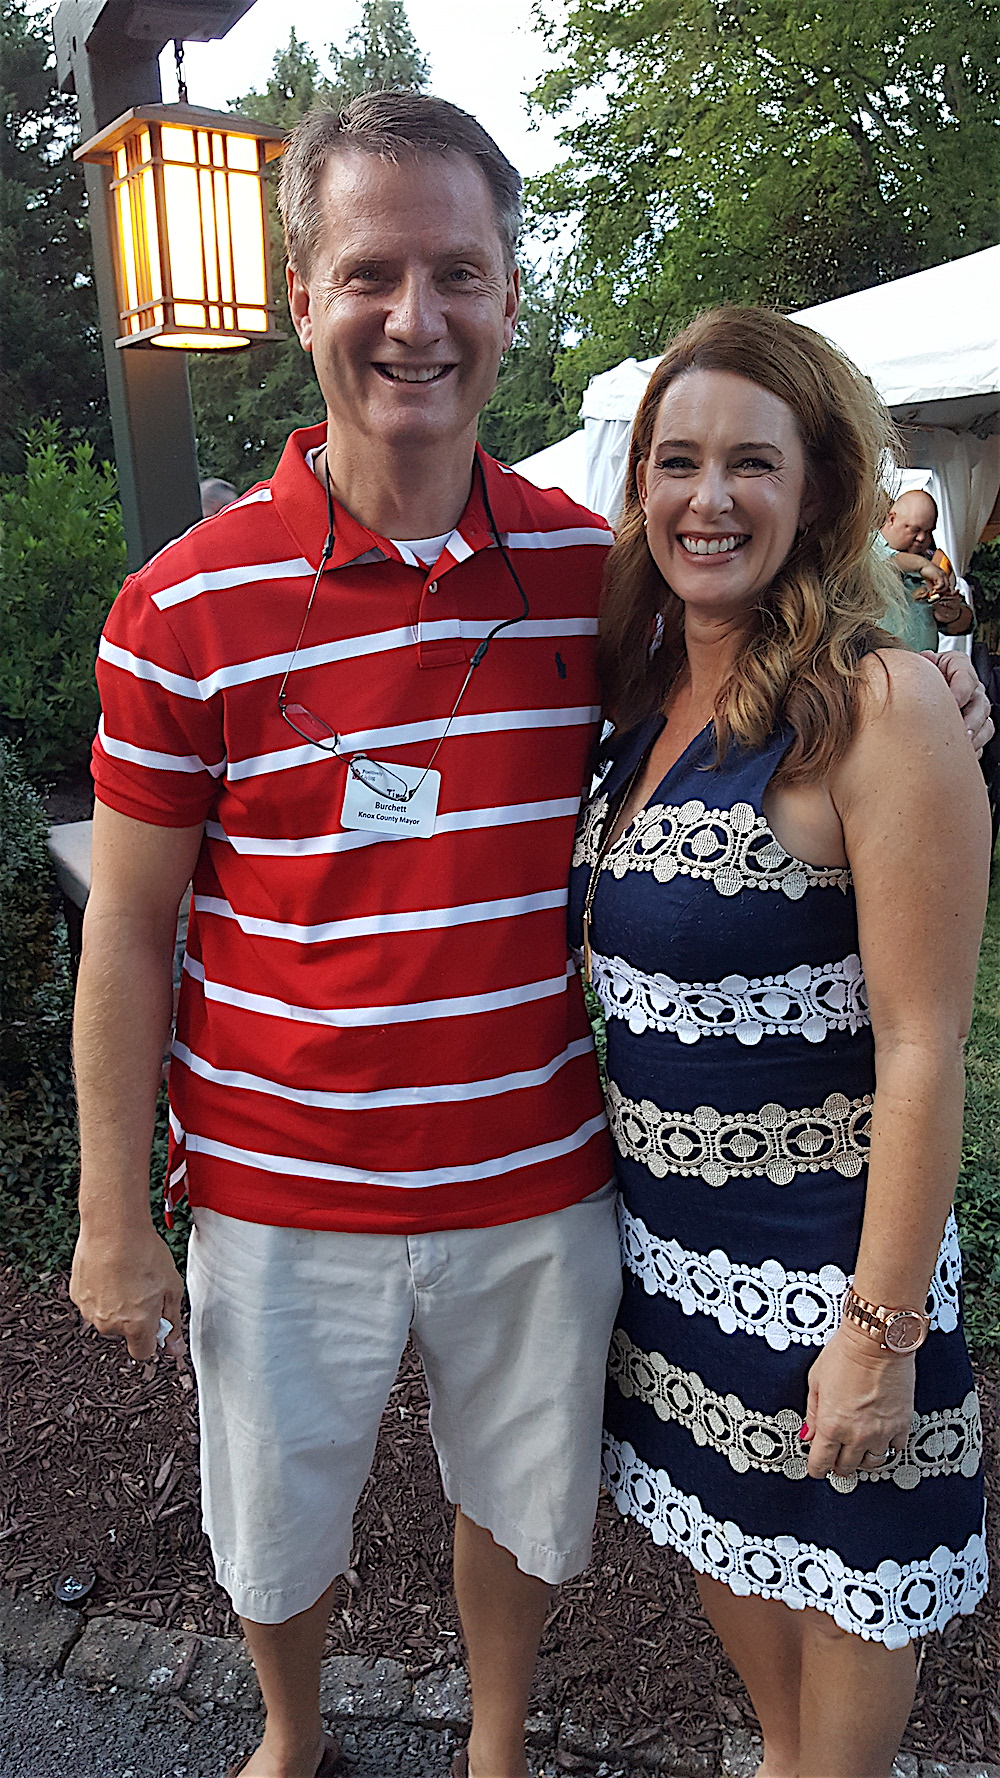 Knox County Mayor Tim Burchett was there with his wife, Kelly.